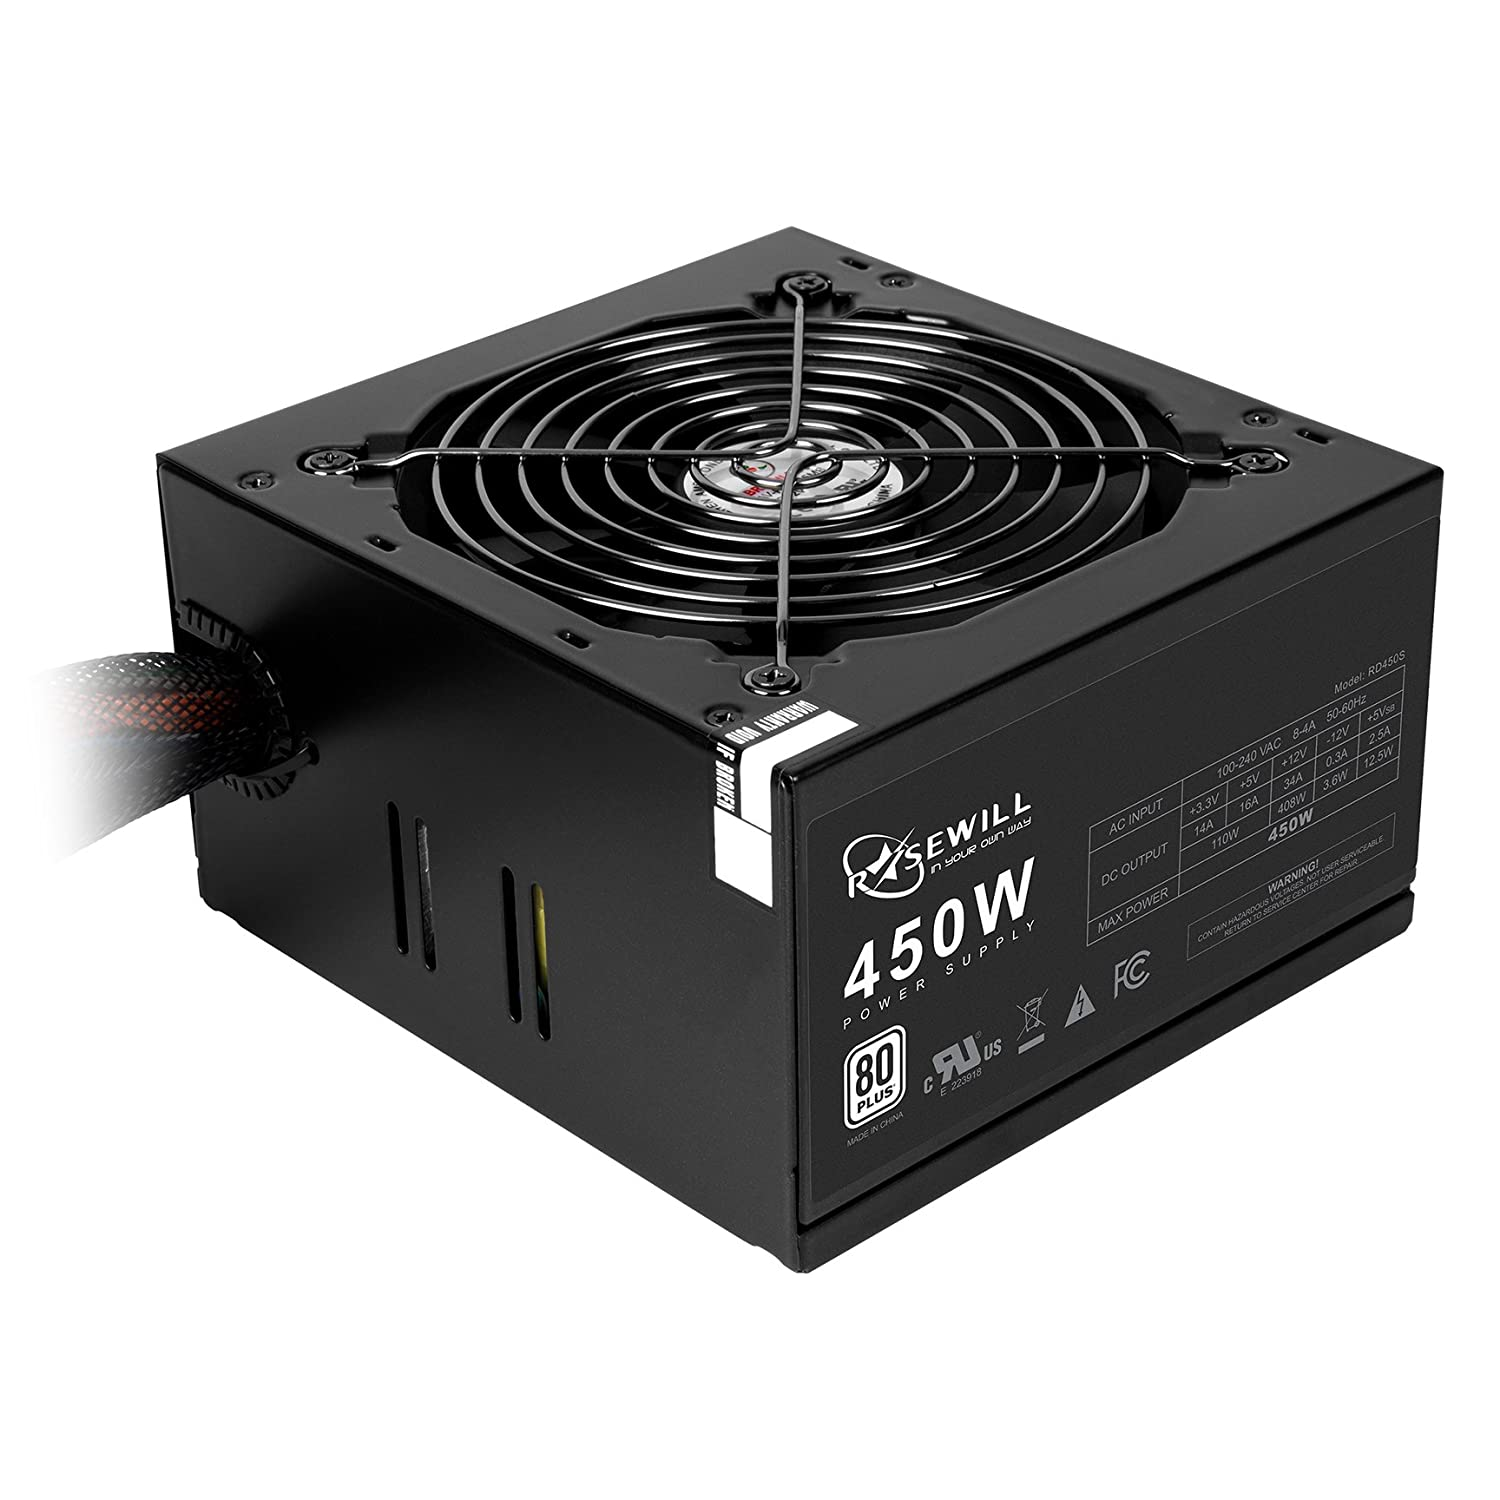 Amazon Rosewill 450W Power Supply ATX12V 450 Power Supply RD450 2